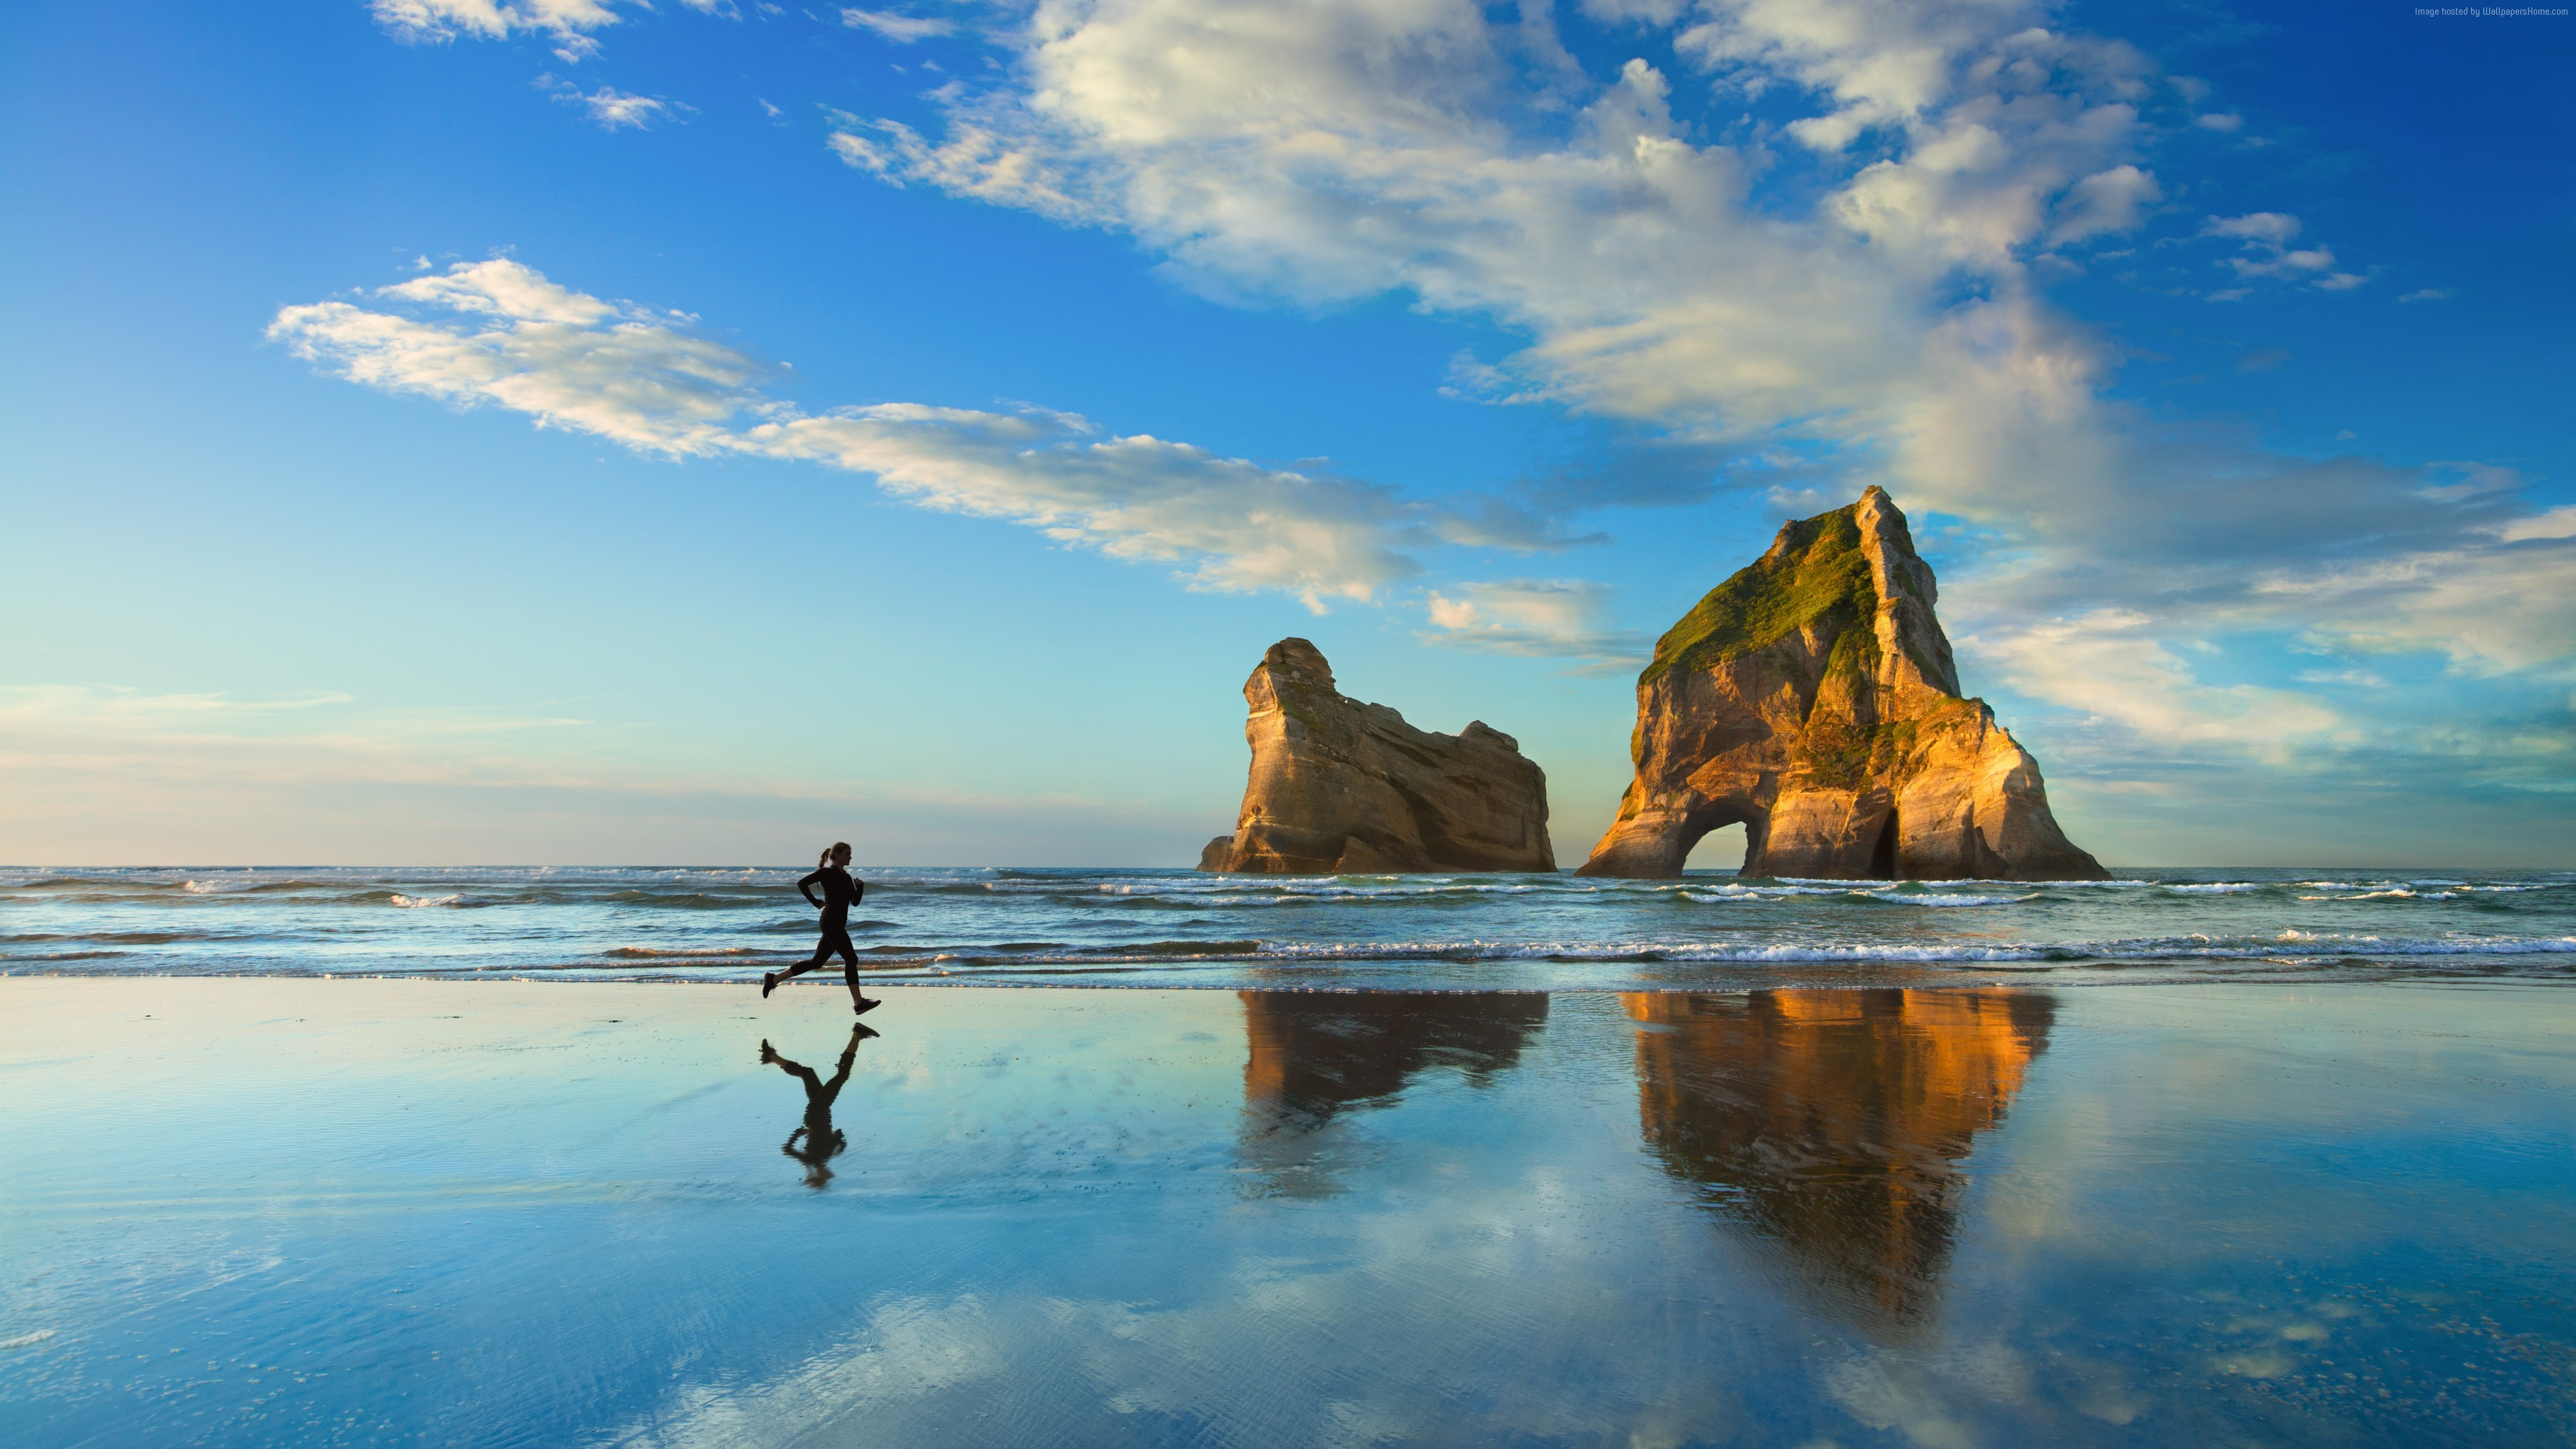 windows 10 4k wallpaper microsoft blue sea woman running.